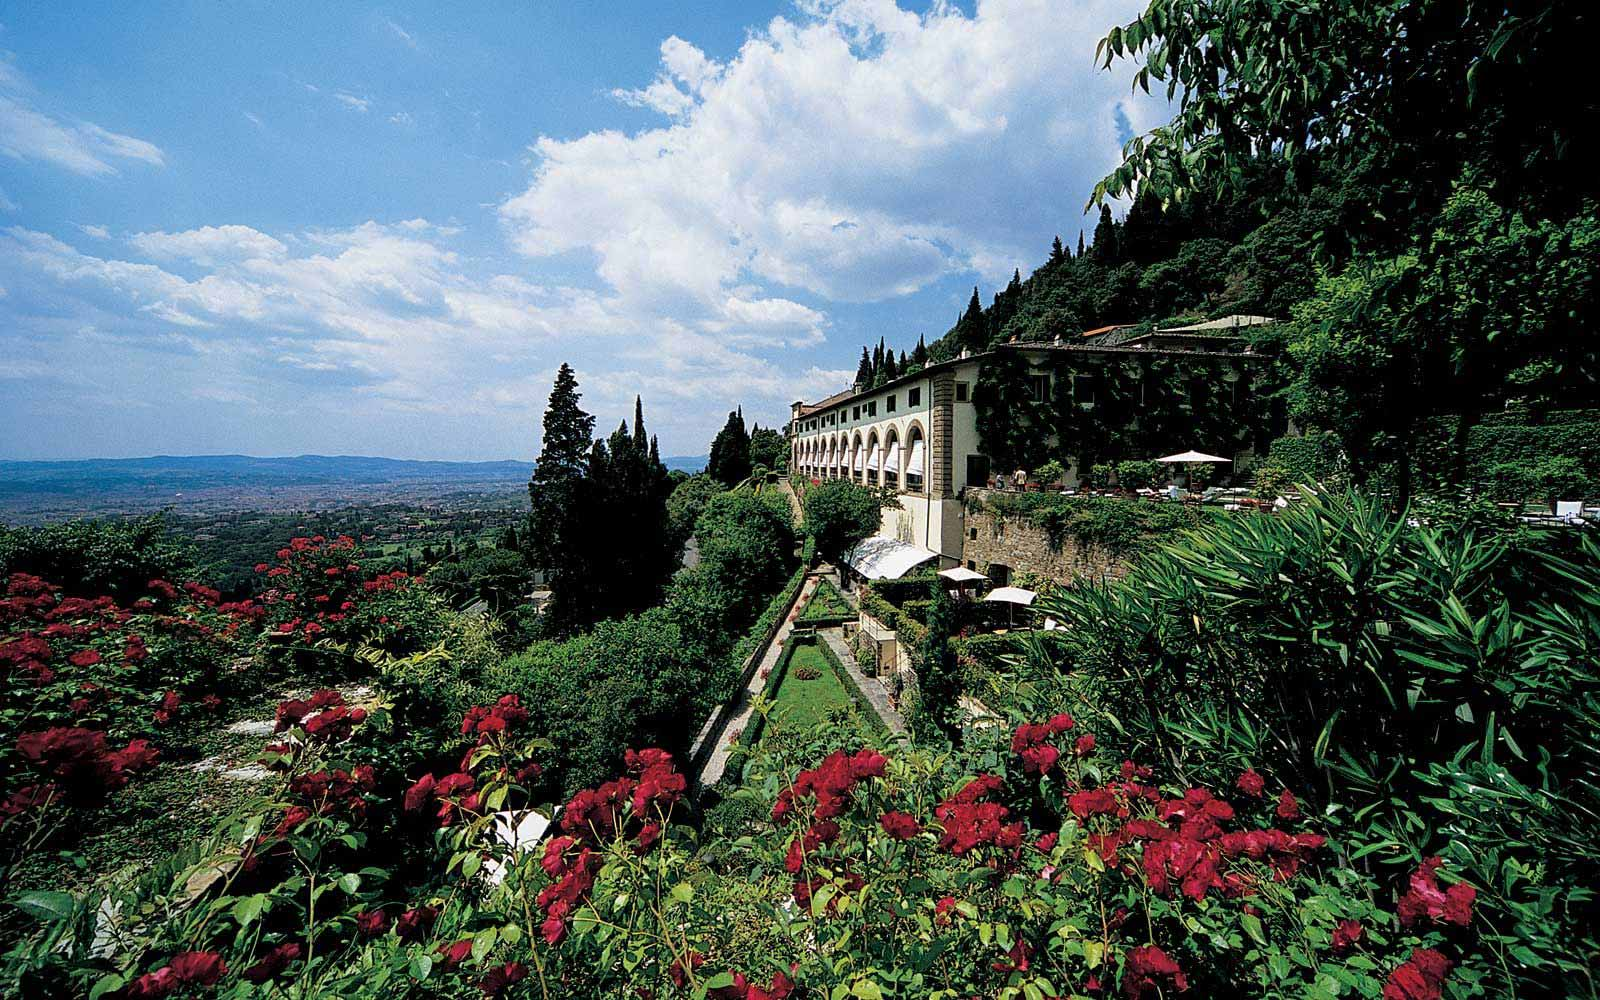 Luxurious gardens at Belmond Villa San Michele